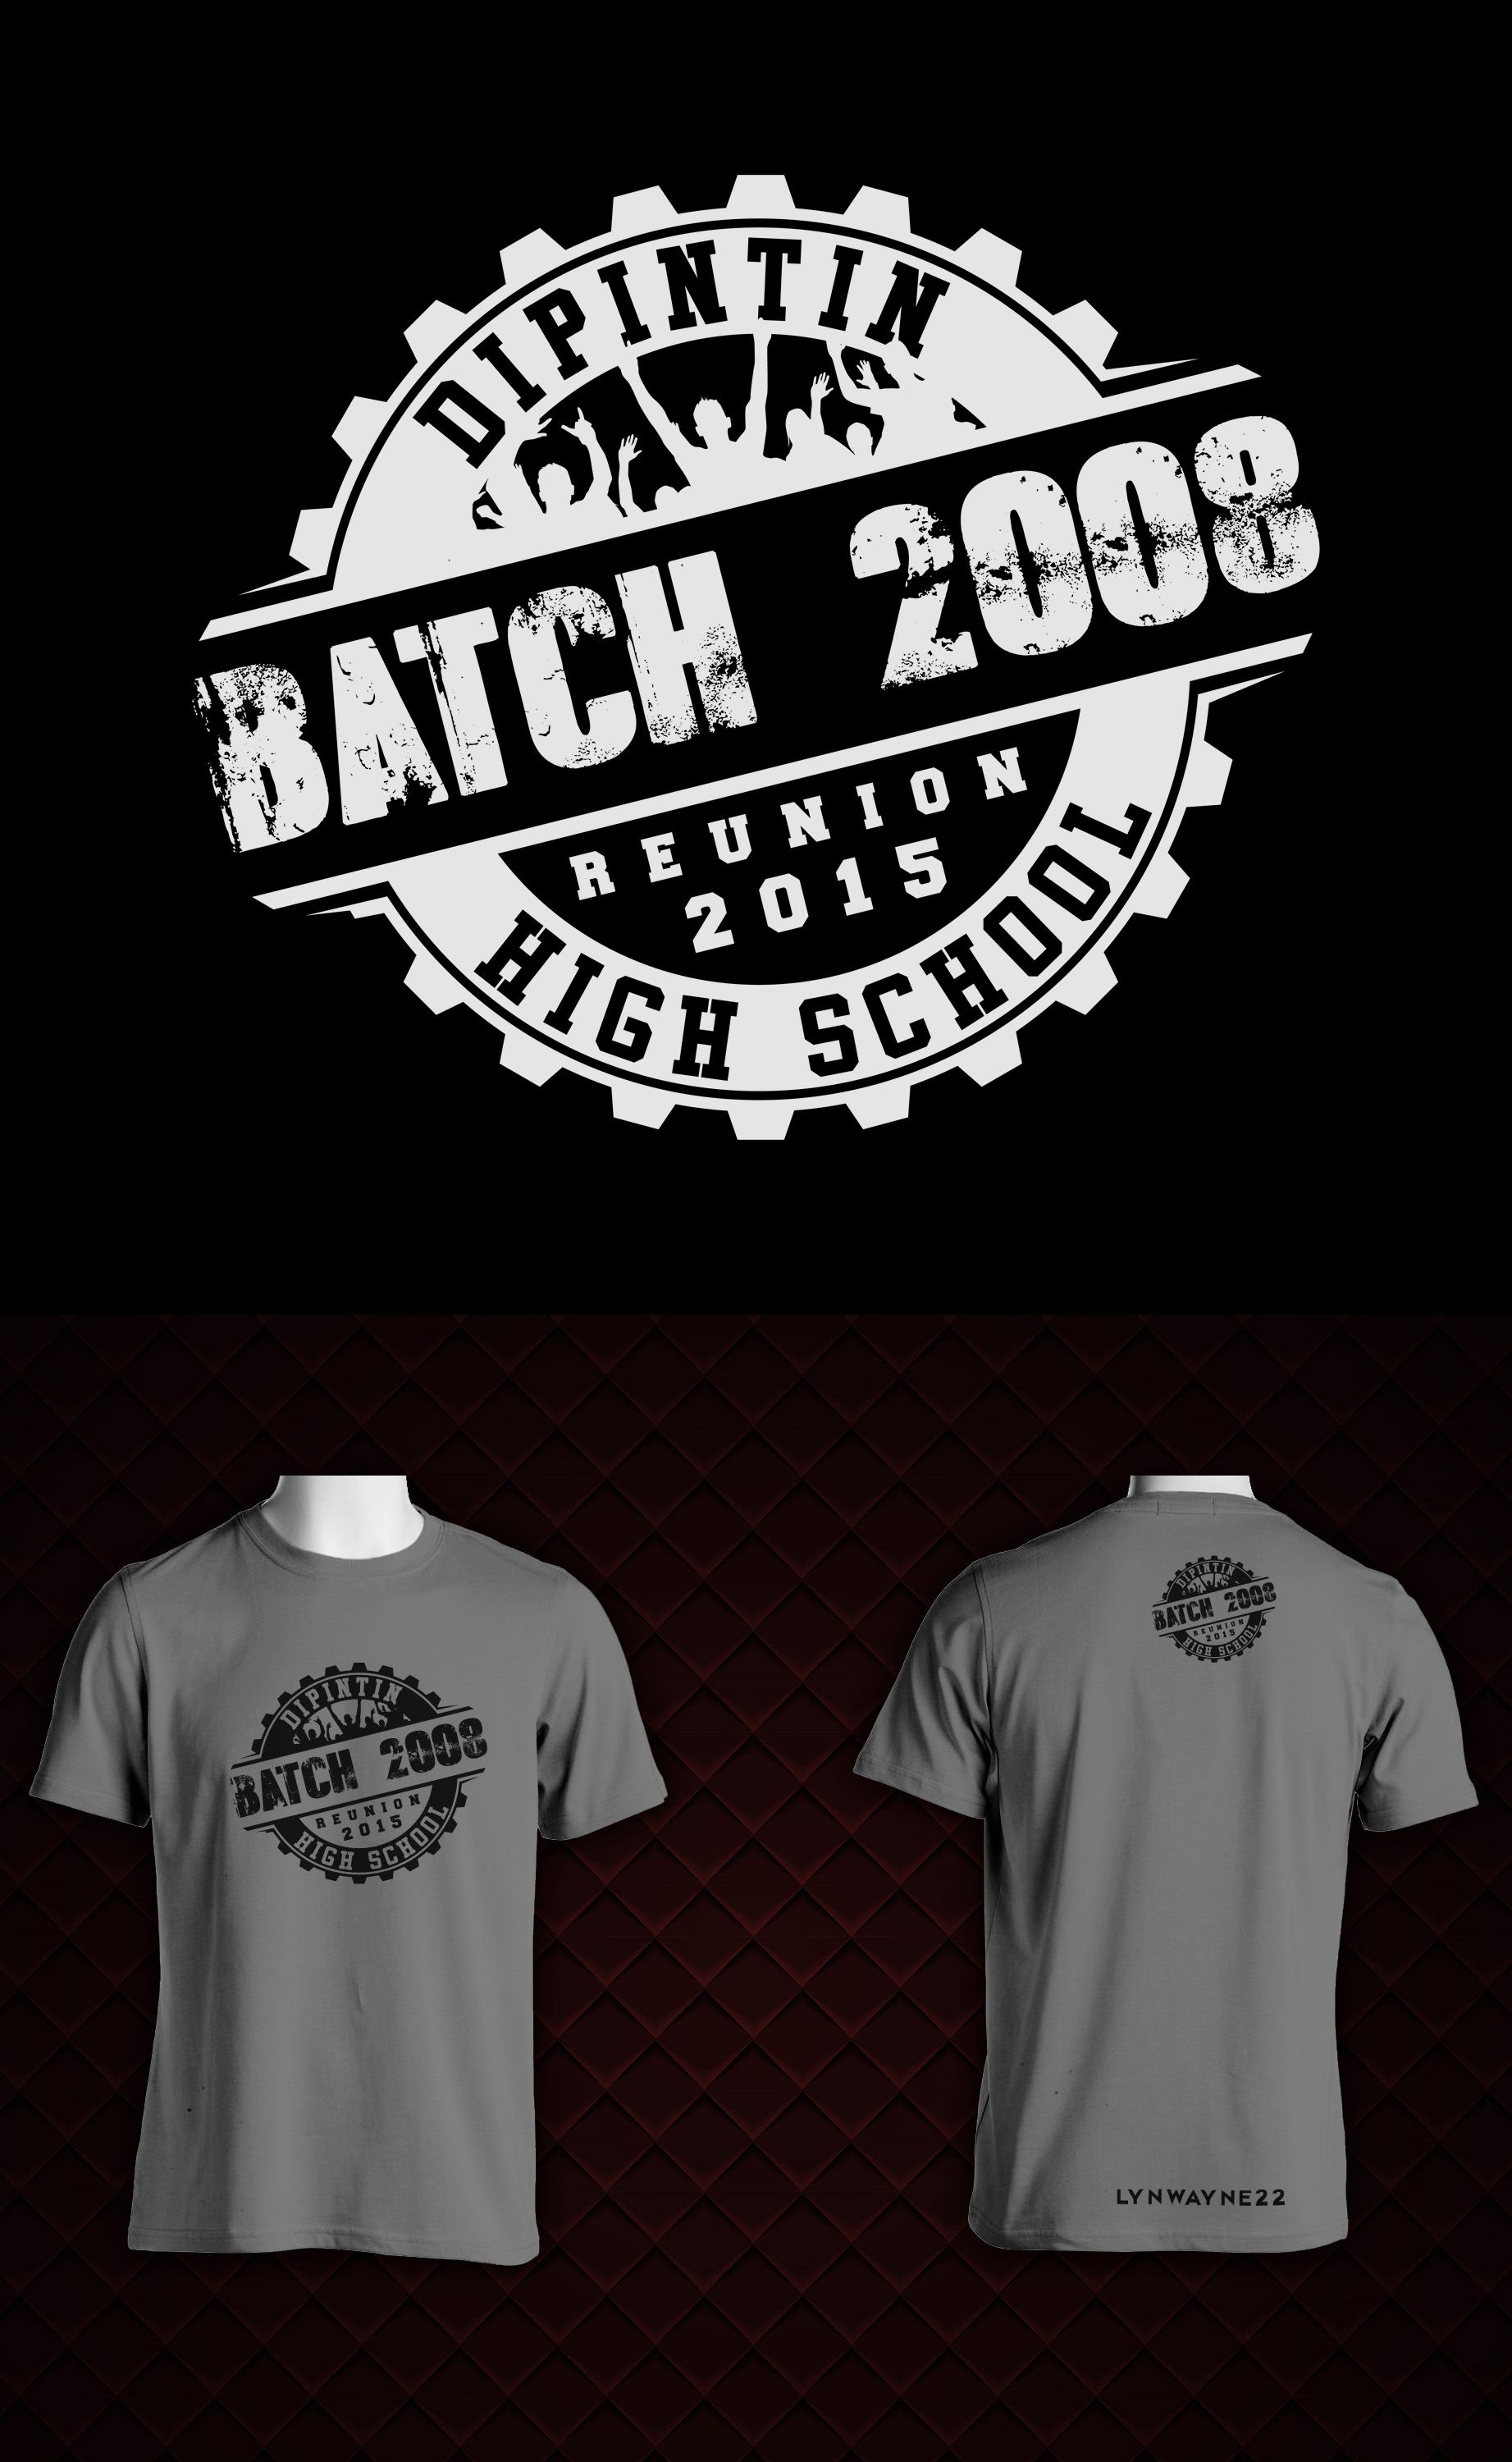 High School Class Batch Reunion Tshirt Design. | CKC shirt ...